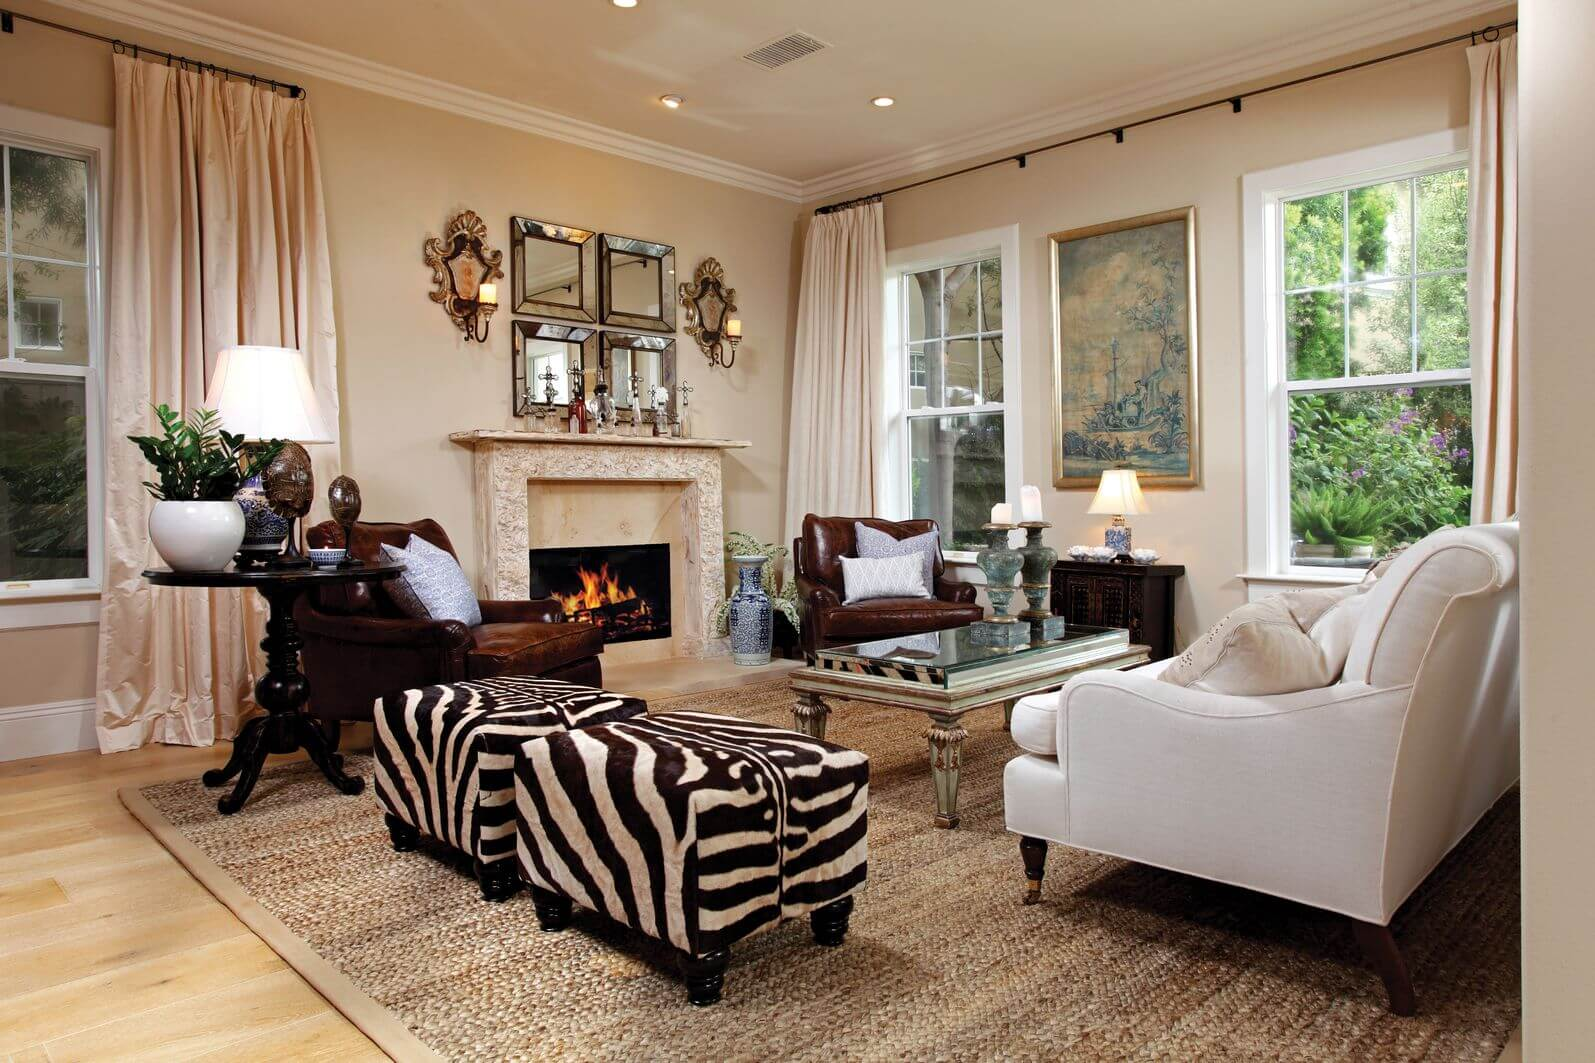 Charmant Larger Formal Living Room Incorporating Zebra Print With Two Identical Zebra  Print Ottomans Off To The